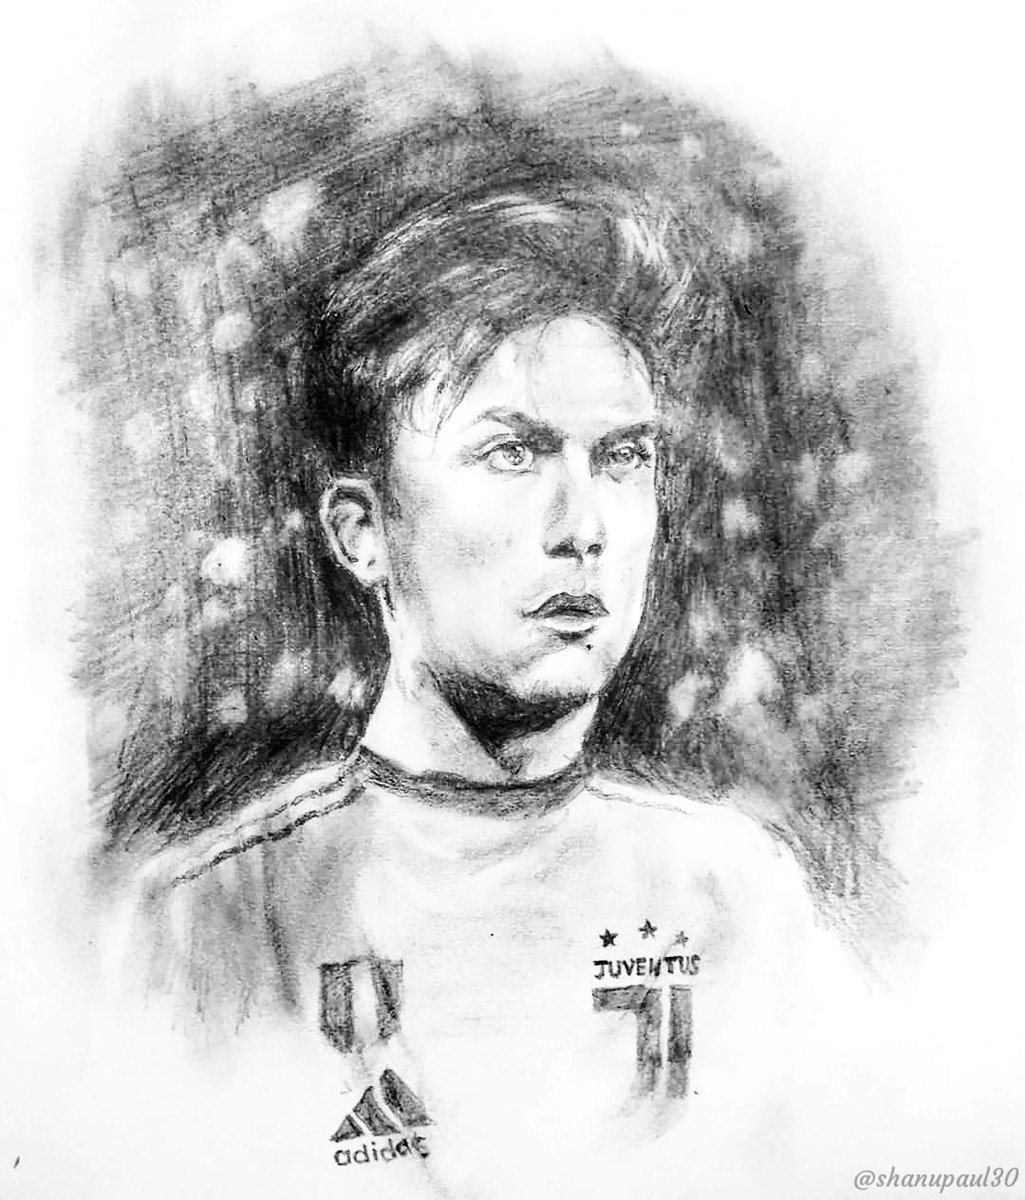 My attempted sketch is of another favourite player of mine, who always shows his passion. The amazing @PauDybala_JR  of #Juventus  Hope you like   #ContestTime #FanArt #SerieAonSony #SonySports @SonySportsIndia   Join:- @viggi_19  @ShubhankarBrah3 @acidkidrock  @emNishant<br>http://pic.twitter.com/FzQdlhnROF